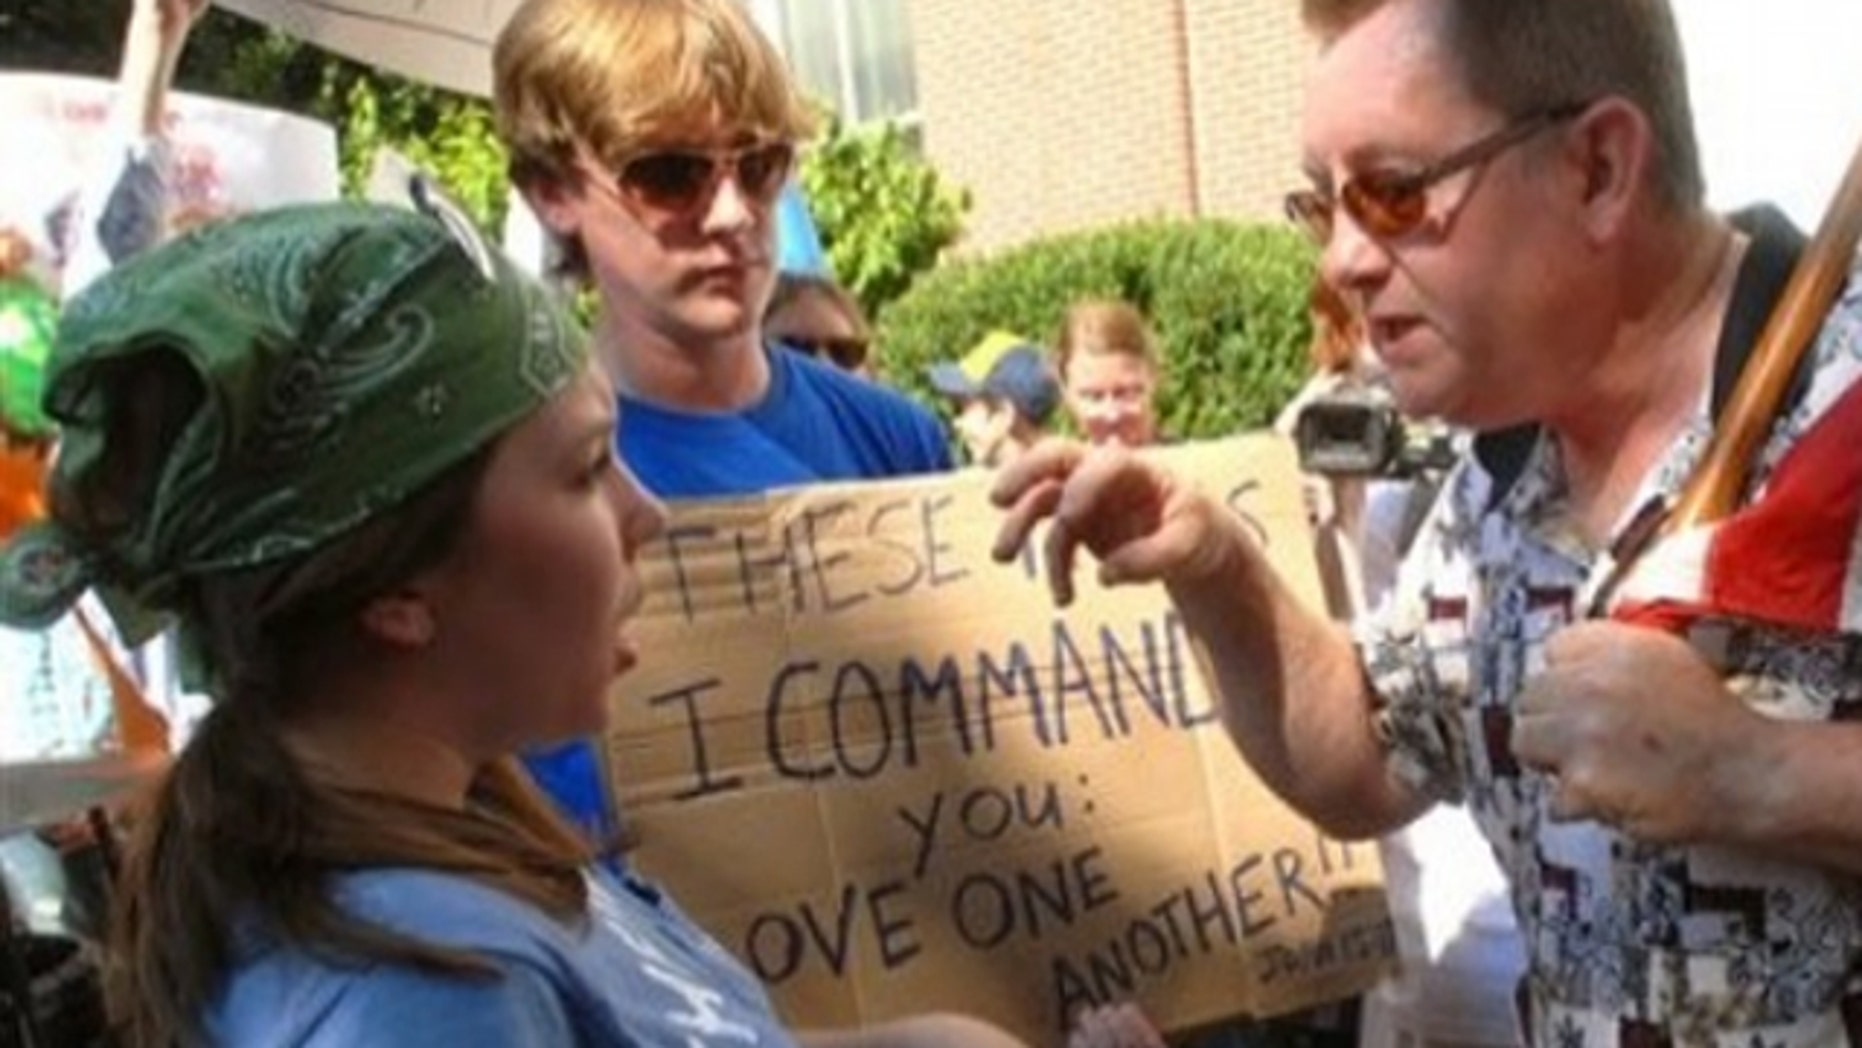 July 14, 2010: Mosque protester Greg Johnson, right, and counter protester Ina Marshall and Tim Foster argue in front of the Rutherford County Courthouse in Murfreesboro, Tenn., about a planned mosque and Islamic community center.